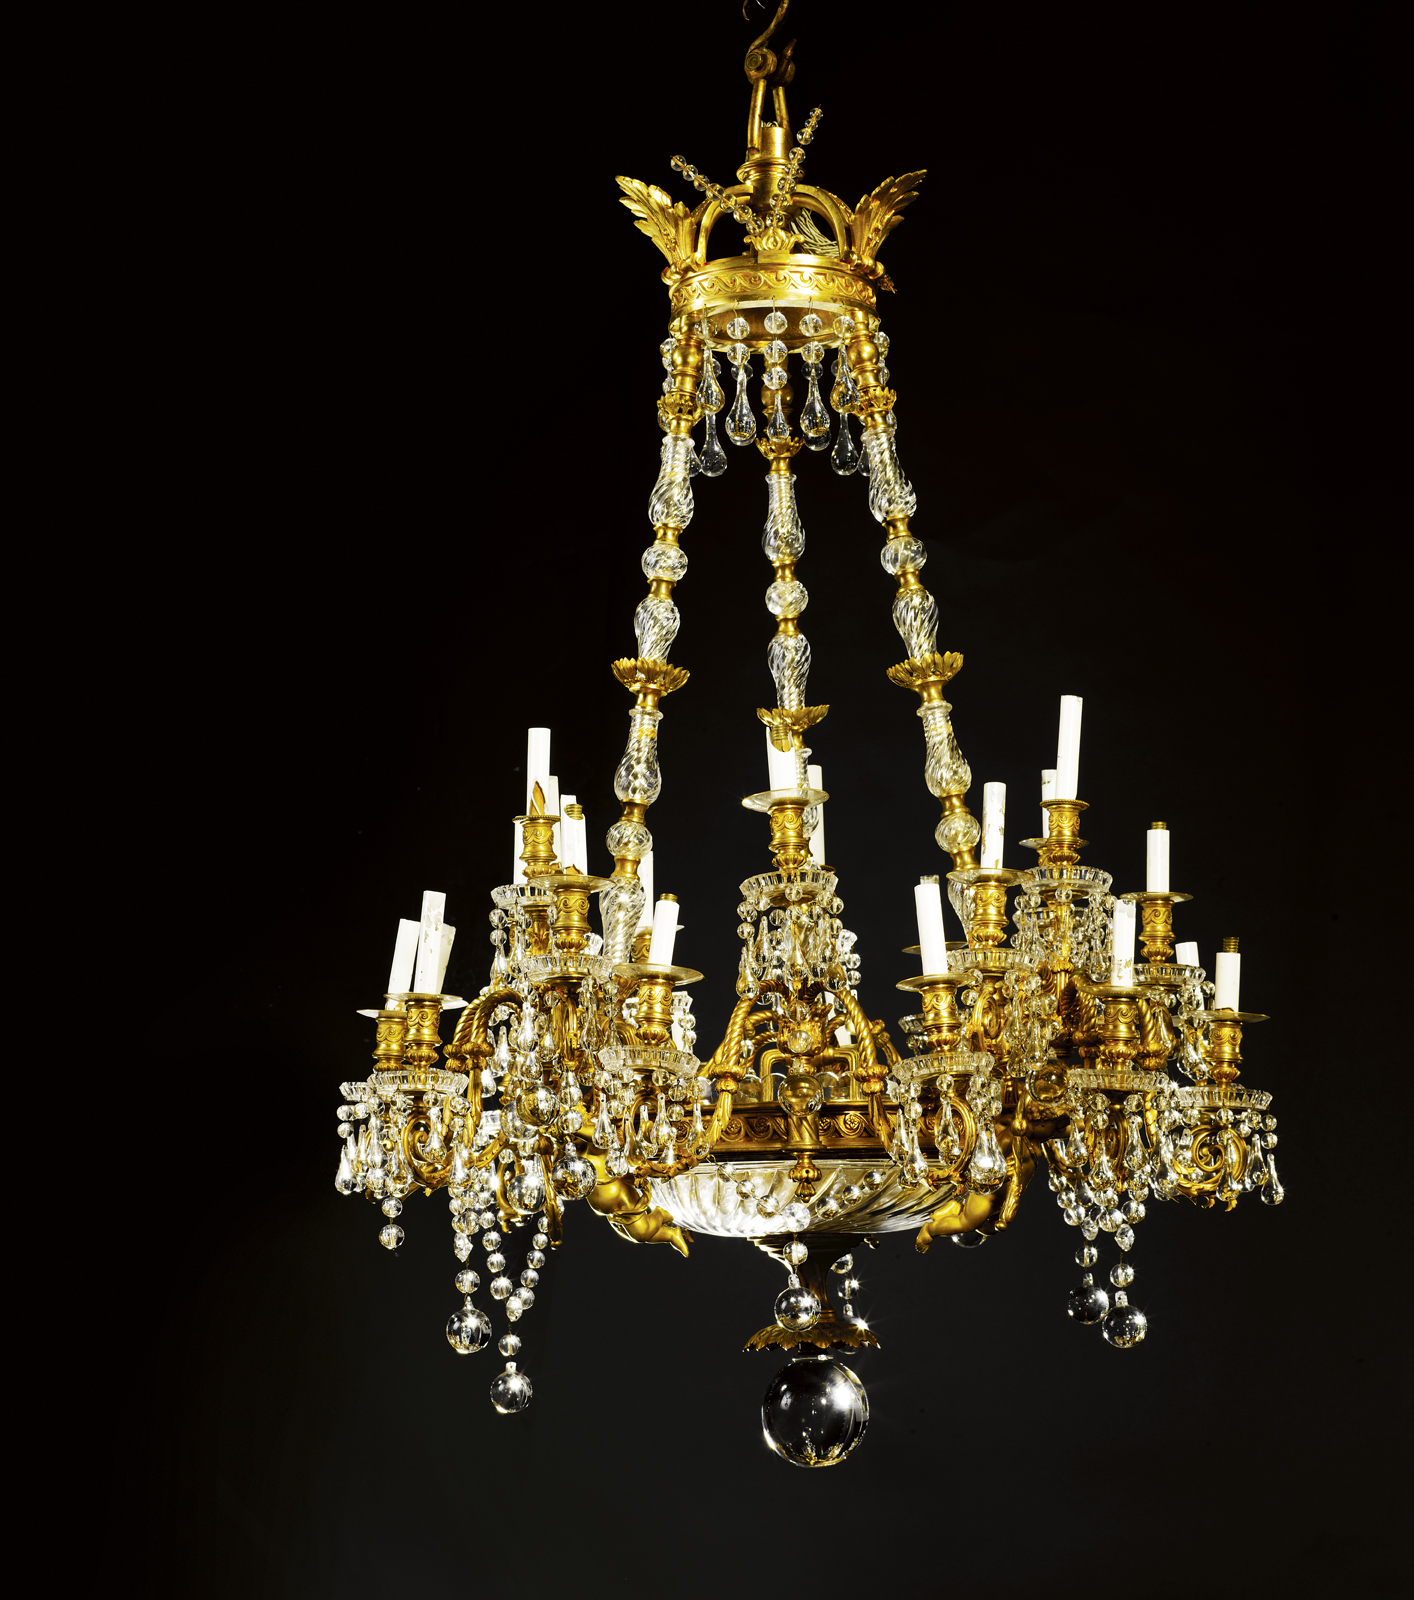 Maison baccarat chandelier for sale antiques classifieds maison baccarat a large two tone burnished gilt bronze and crystal twenty seven light chandelier second half 19th century hung from a coronet with three aloadofball Images